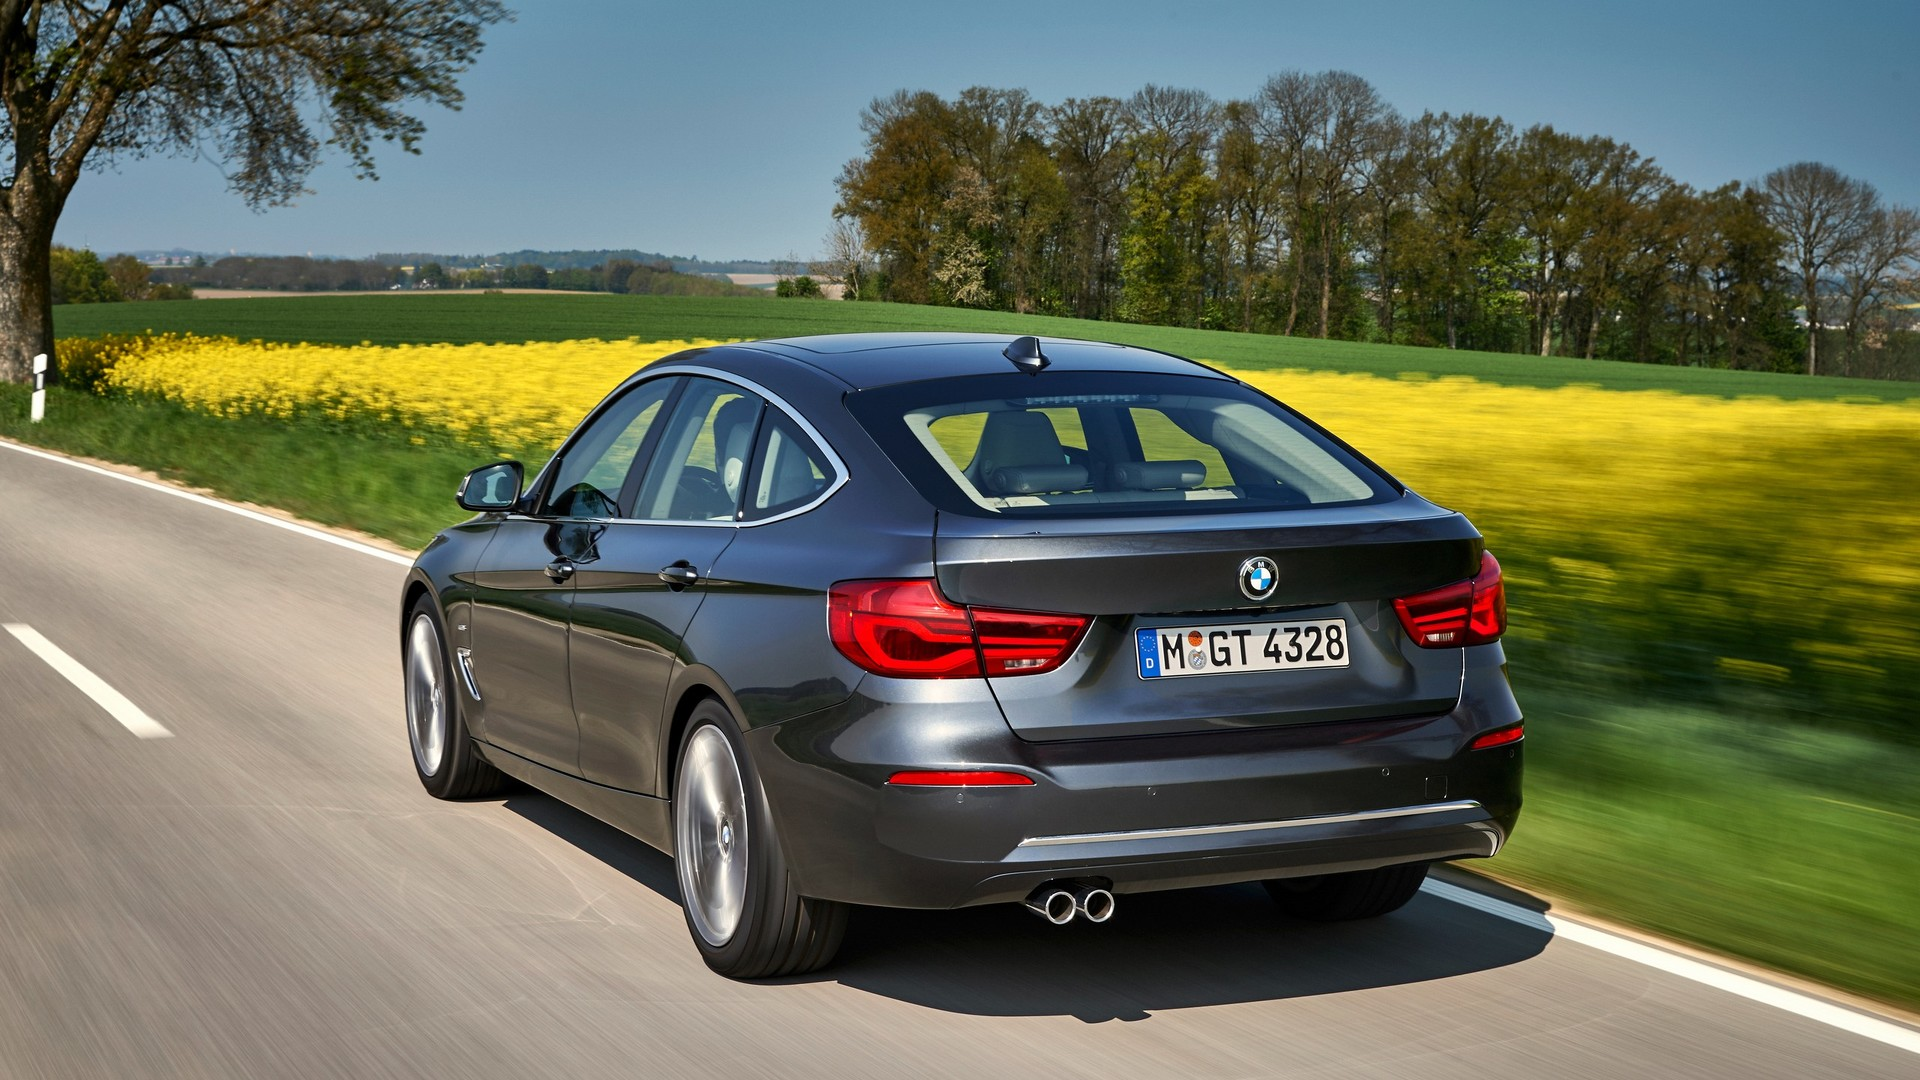 Bmw Confirms There Won T Be A Next Generation 3 Series Gt